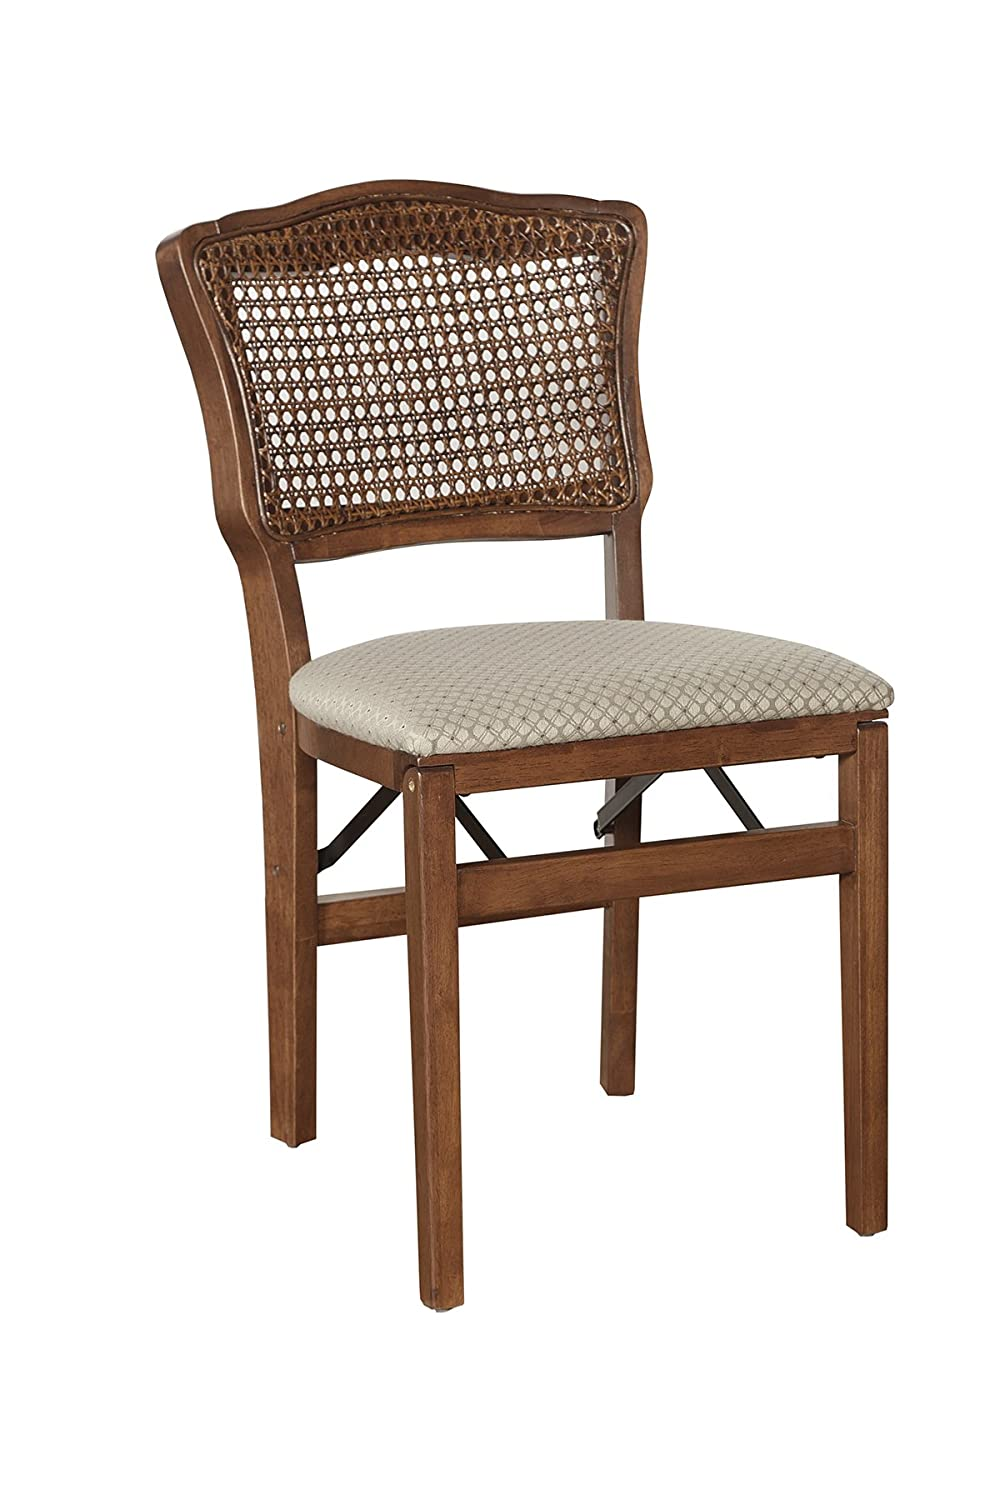 Stakmore French Cane Back Folding Chair Finish, Set of 2, Fruitwood